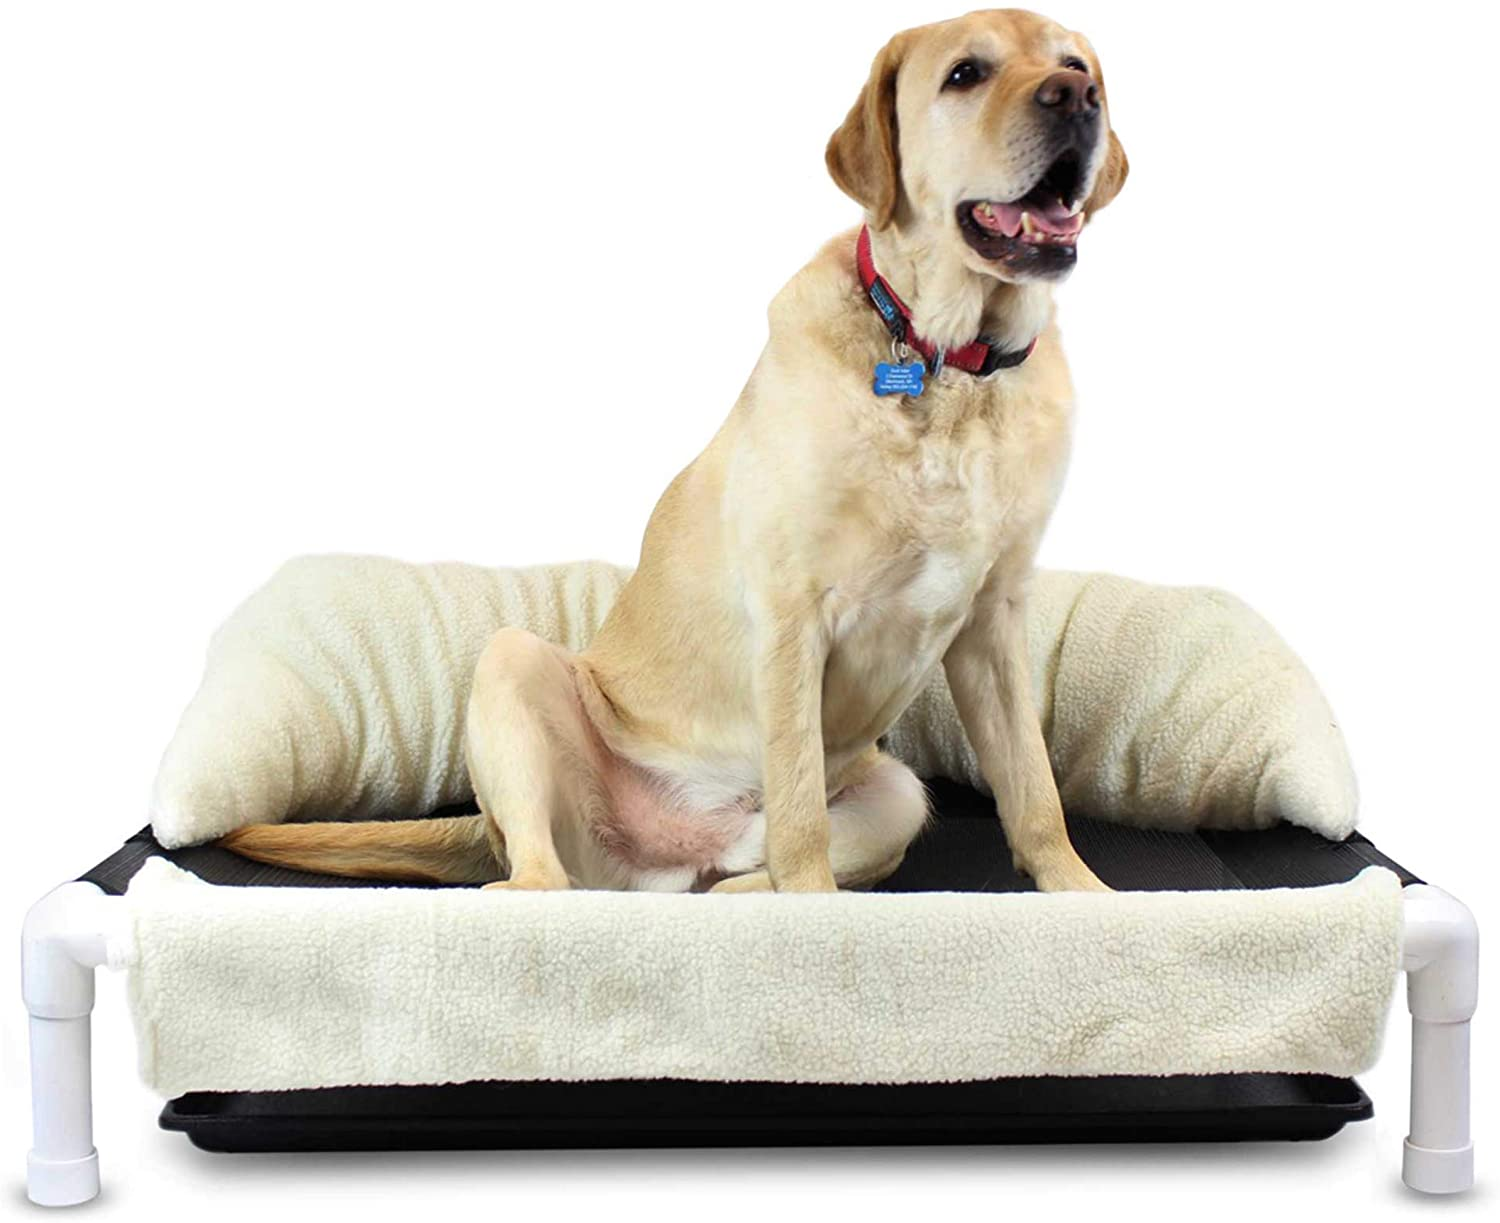 Best Dog Beds for Incontinence